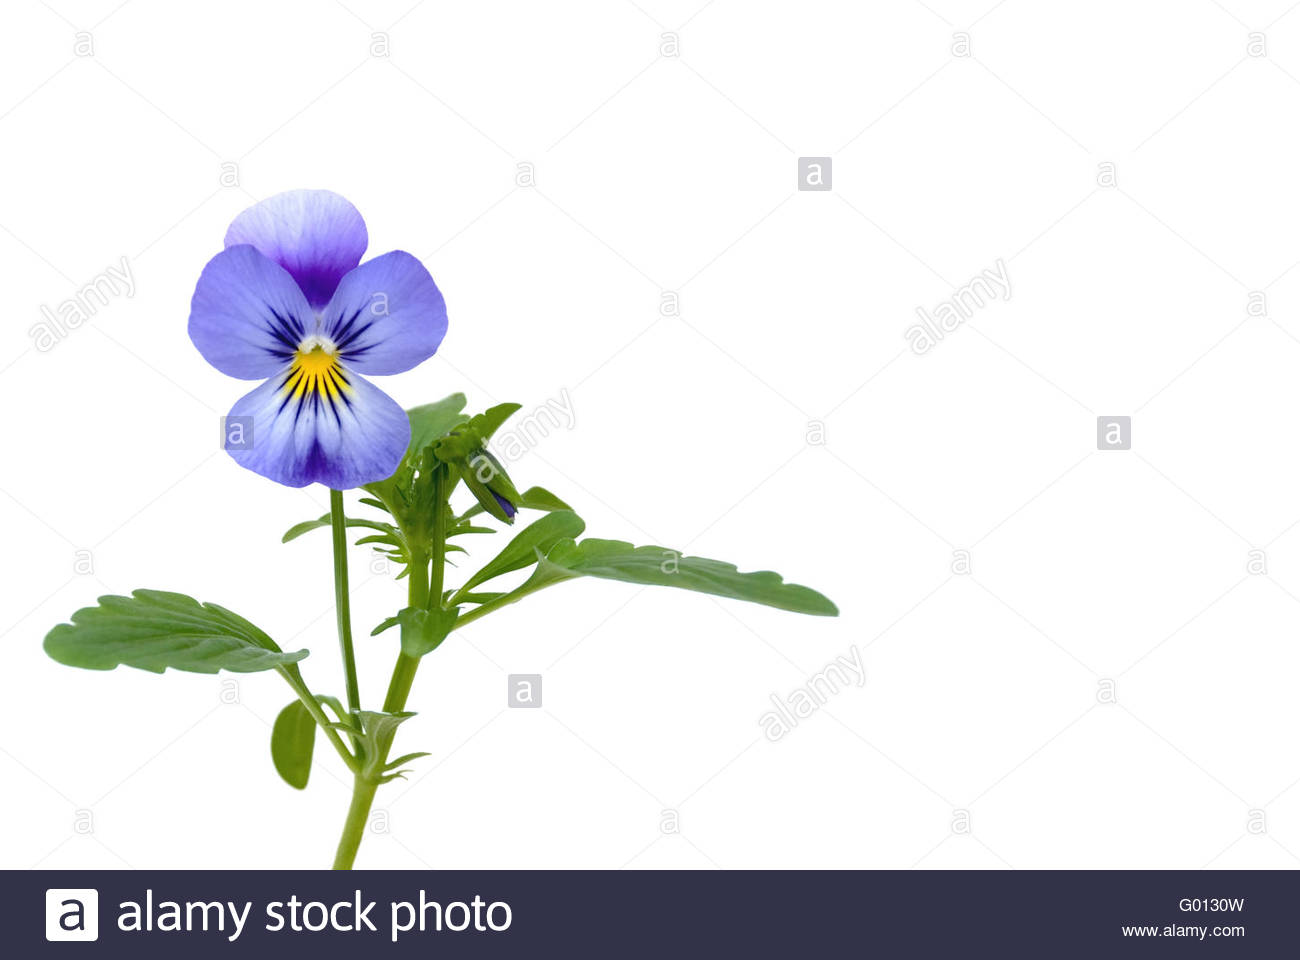 pansies isolated on white - Stock Image